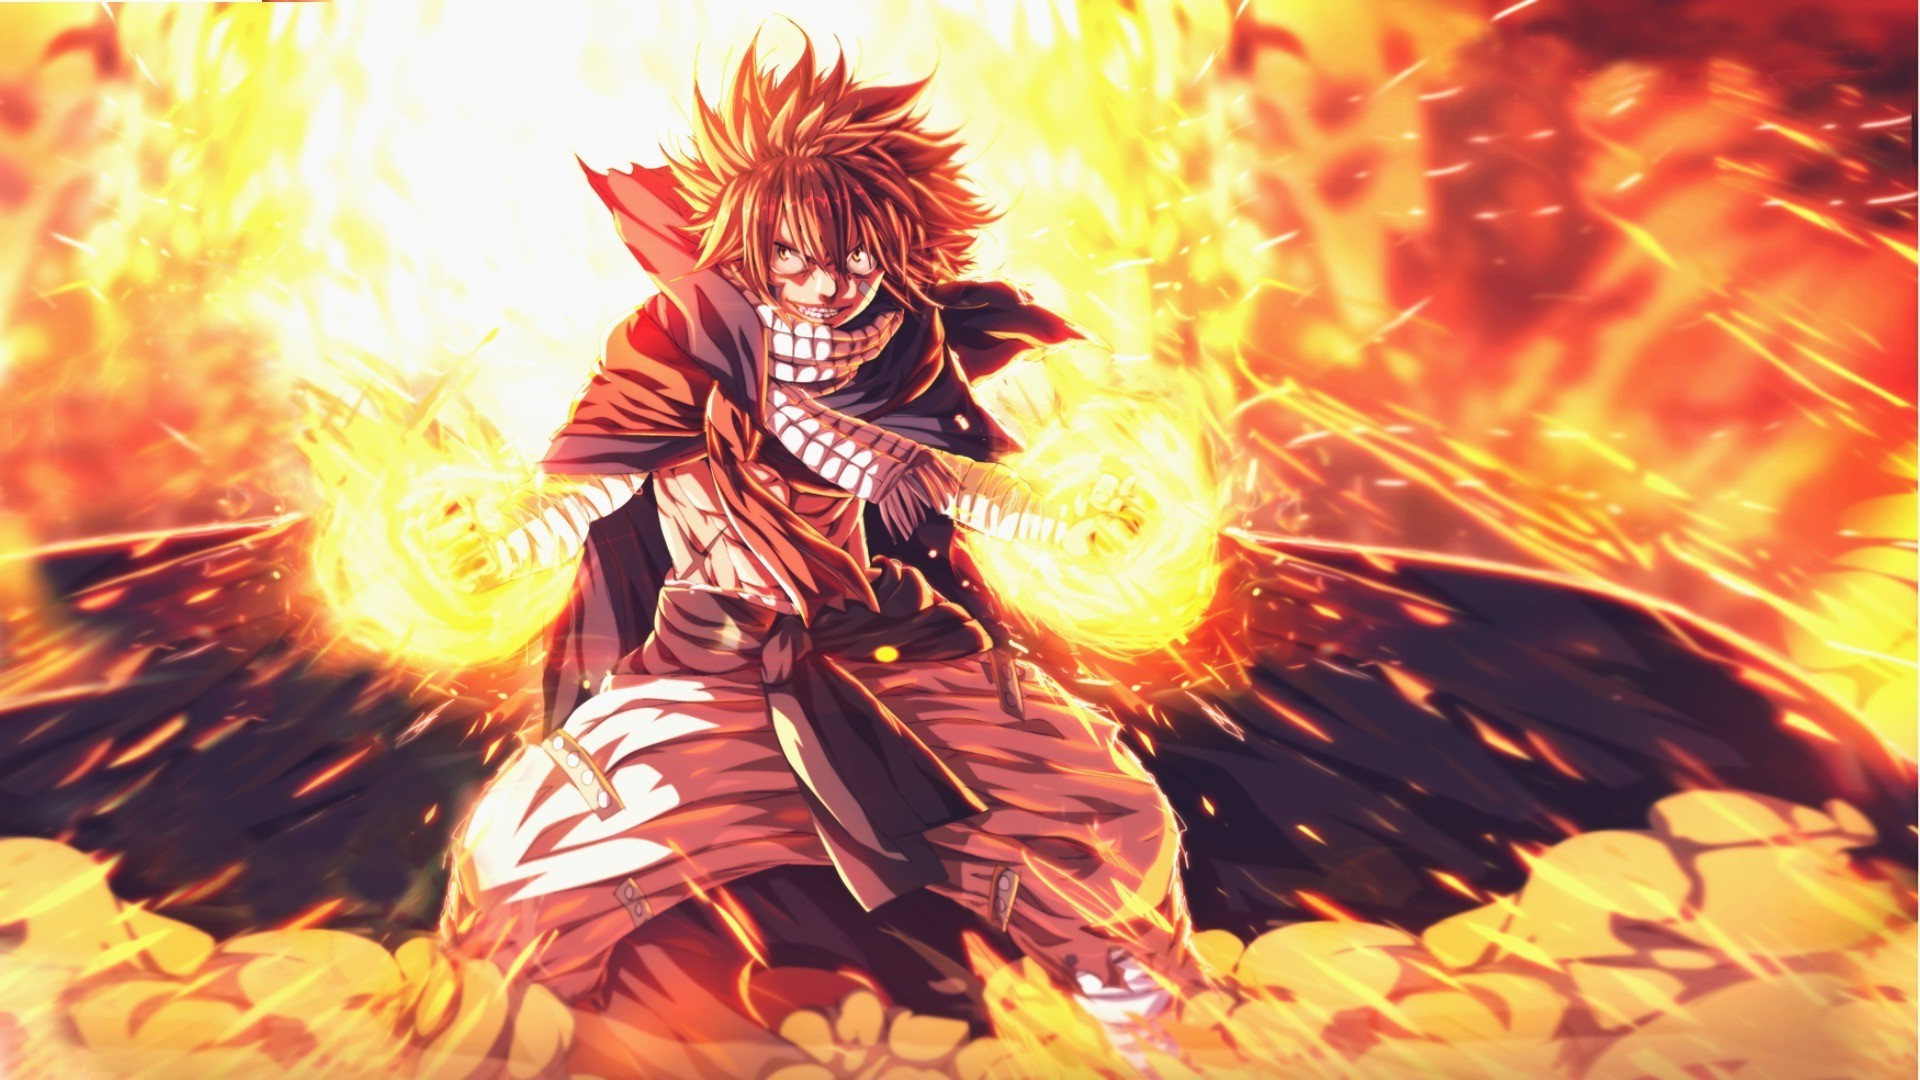 Nature Full Hd 3d Wallpapers 1920x1080 Fairy Tail Dragneel Natsu Wallpapers Hd Desktop And